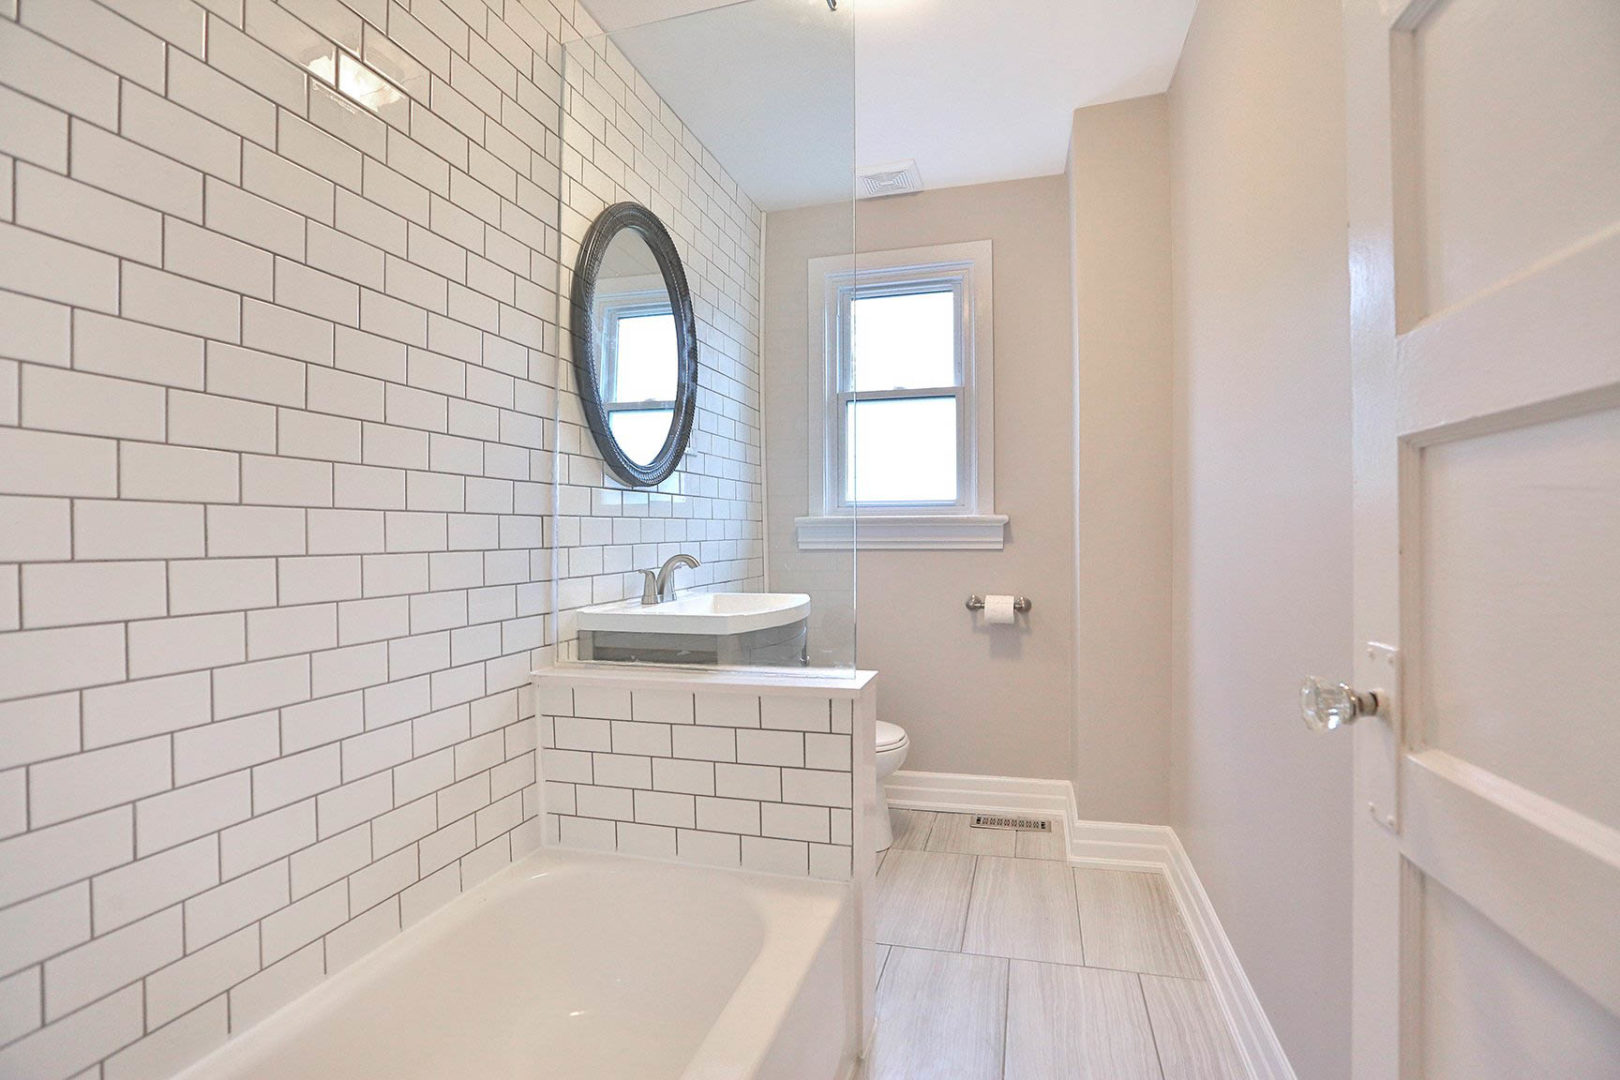 bathroom inspiration for updating your home - Lara Young for nesting story